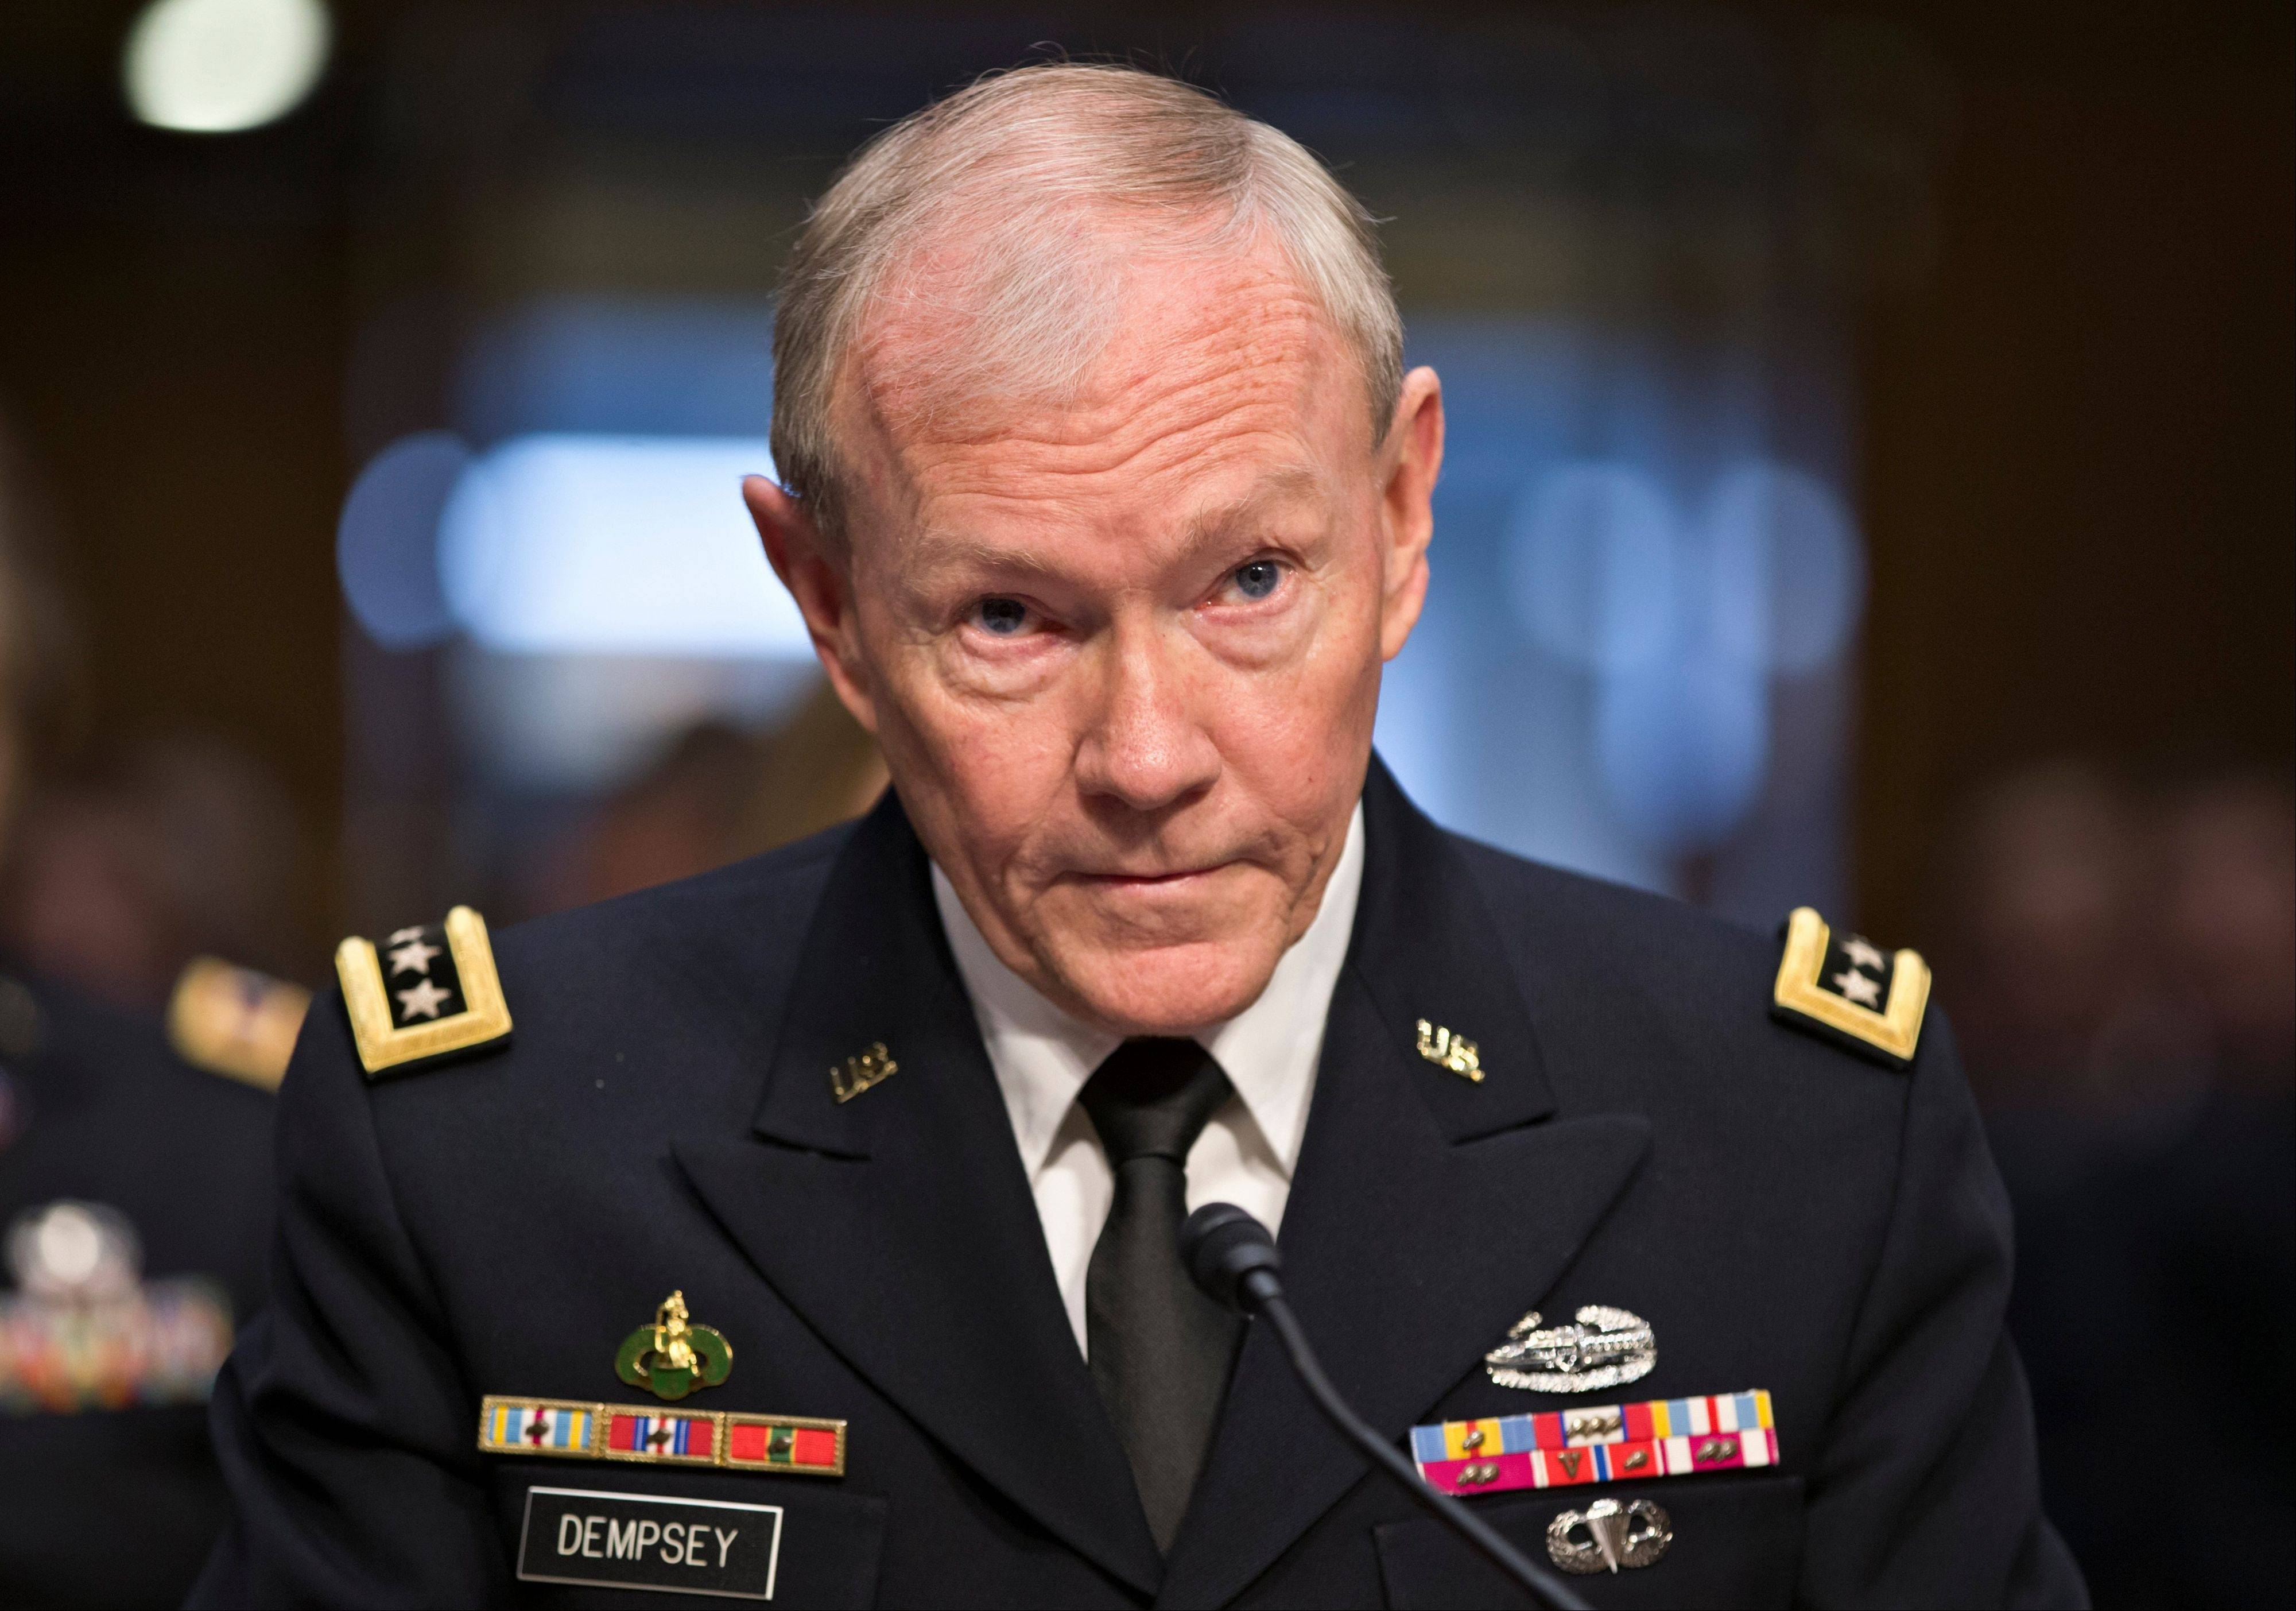 Gen. Martin Dempsey, chairman of the Joint Chiefs of Staff, said Monday establishing a no-fly zone to protect Syrian rebels would require hundreds of U.S. aircraft at a cost of upward of $1 billion per month and no assurance that it would change the momentum in the 2-year-old civil war.